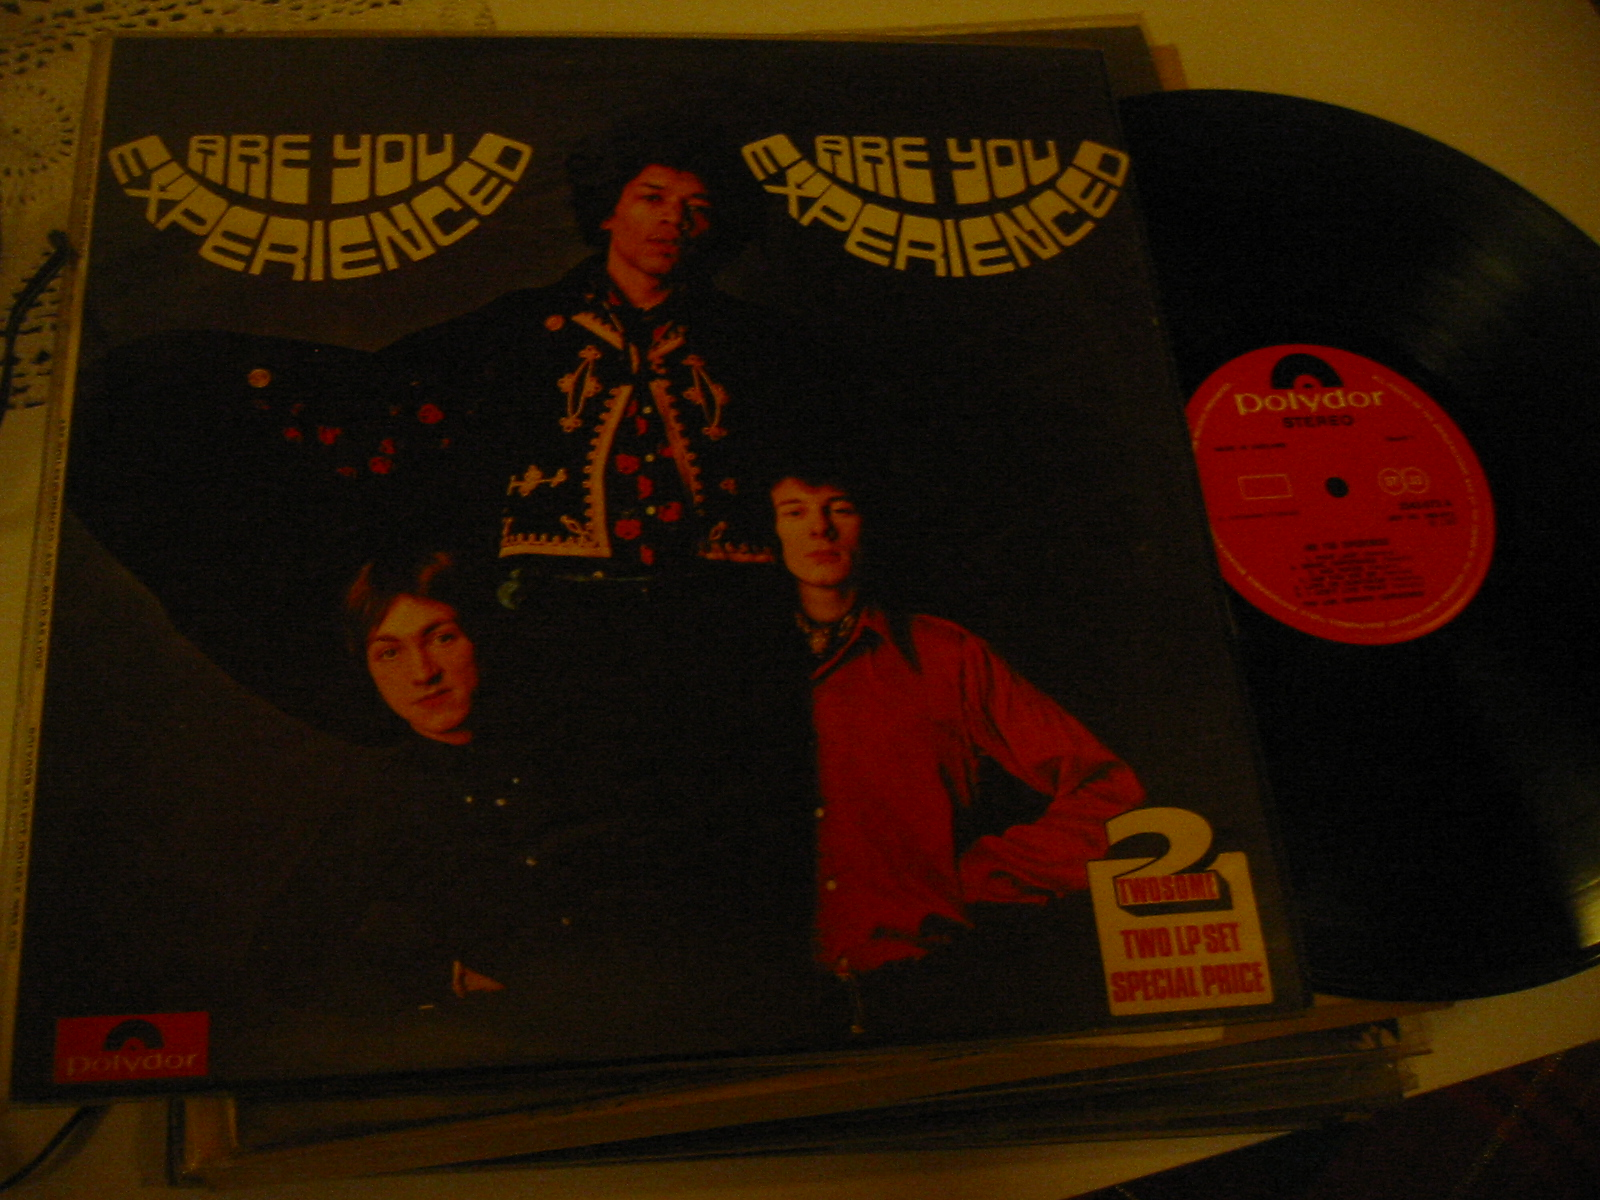 JIMI HENDRIX - ARE YOU EXPERIENCED - POLYDOR 2 LP